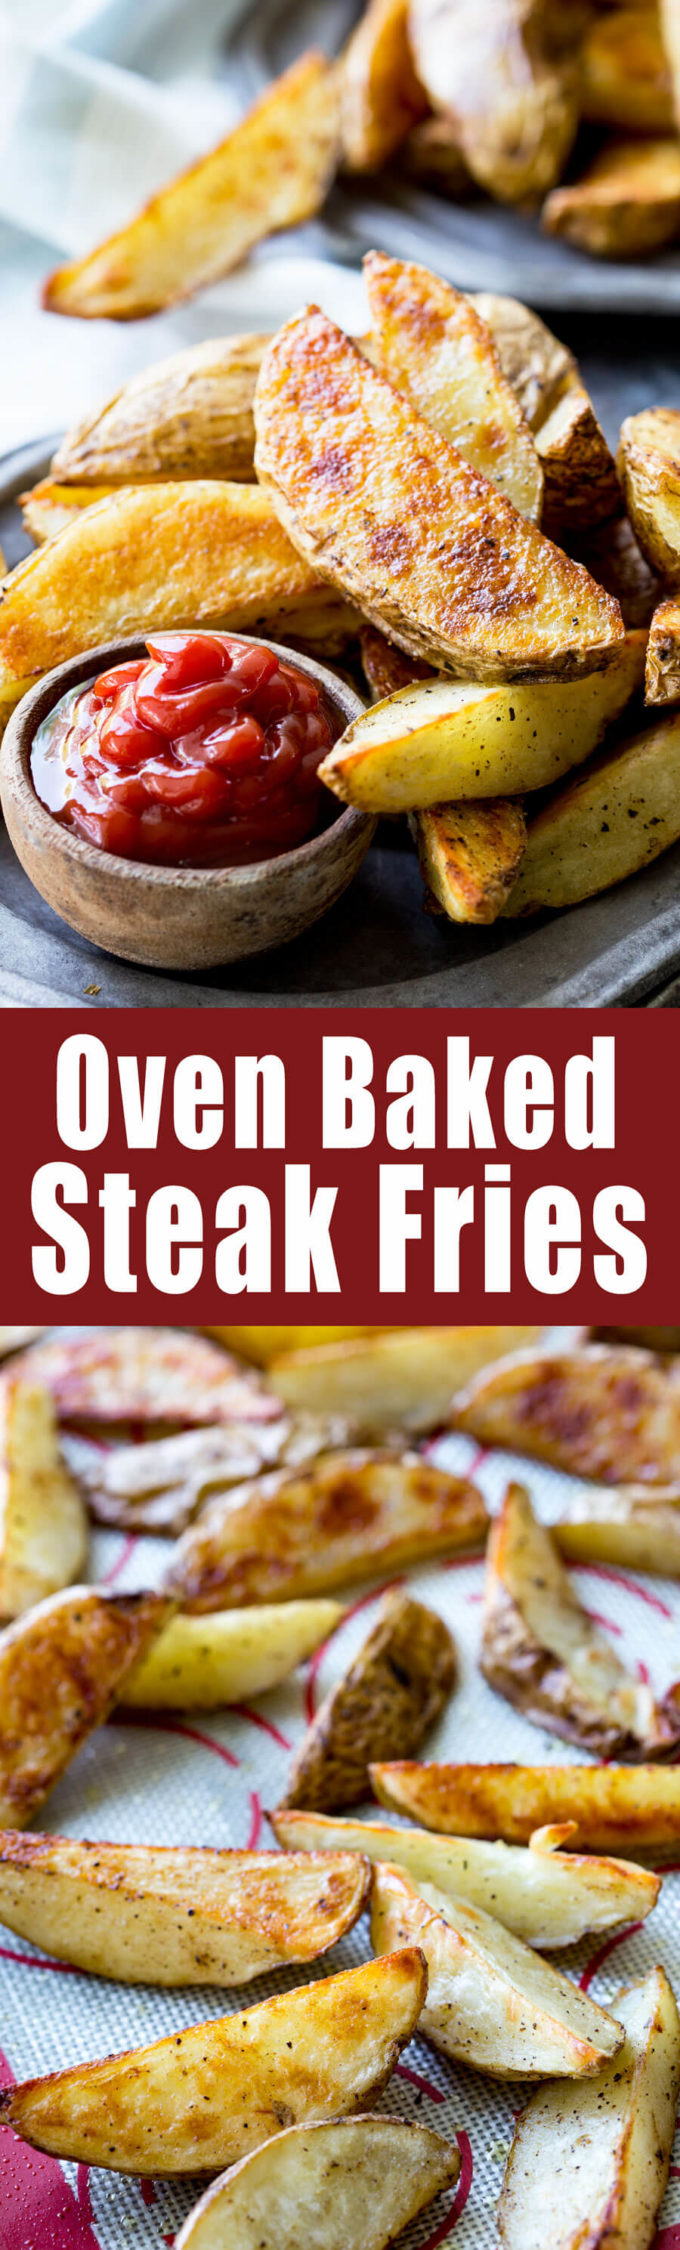 Steak Fries: Crispy, crave-worthy, delicious steak fries that are baked, not fried. They have a nice crispy outer layer and the inside is melt in your mouth soft and delicious. This method is super easy, and produces great fries every time!